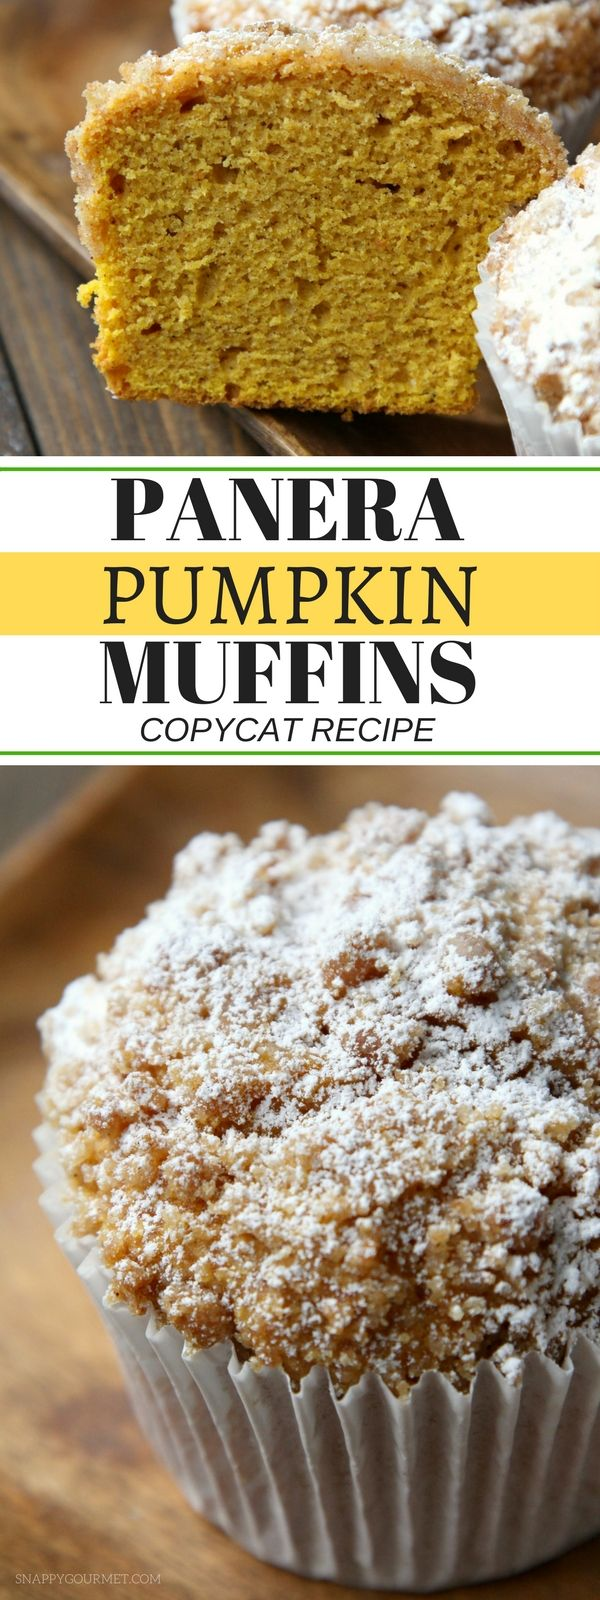 Panera Pumpkin Muffin Recipe - easy copycat recipe for the best moist pumpkin muffins with pumpkin spice and a crumb topping! #Pumpkin #Copycat #SnappyGourmet SnappyGourmet.com